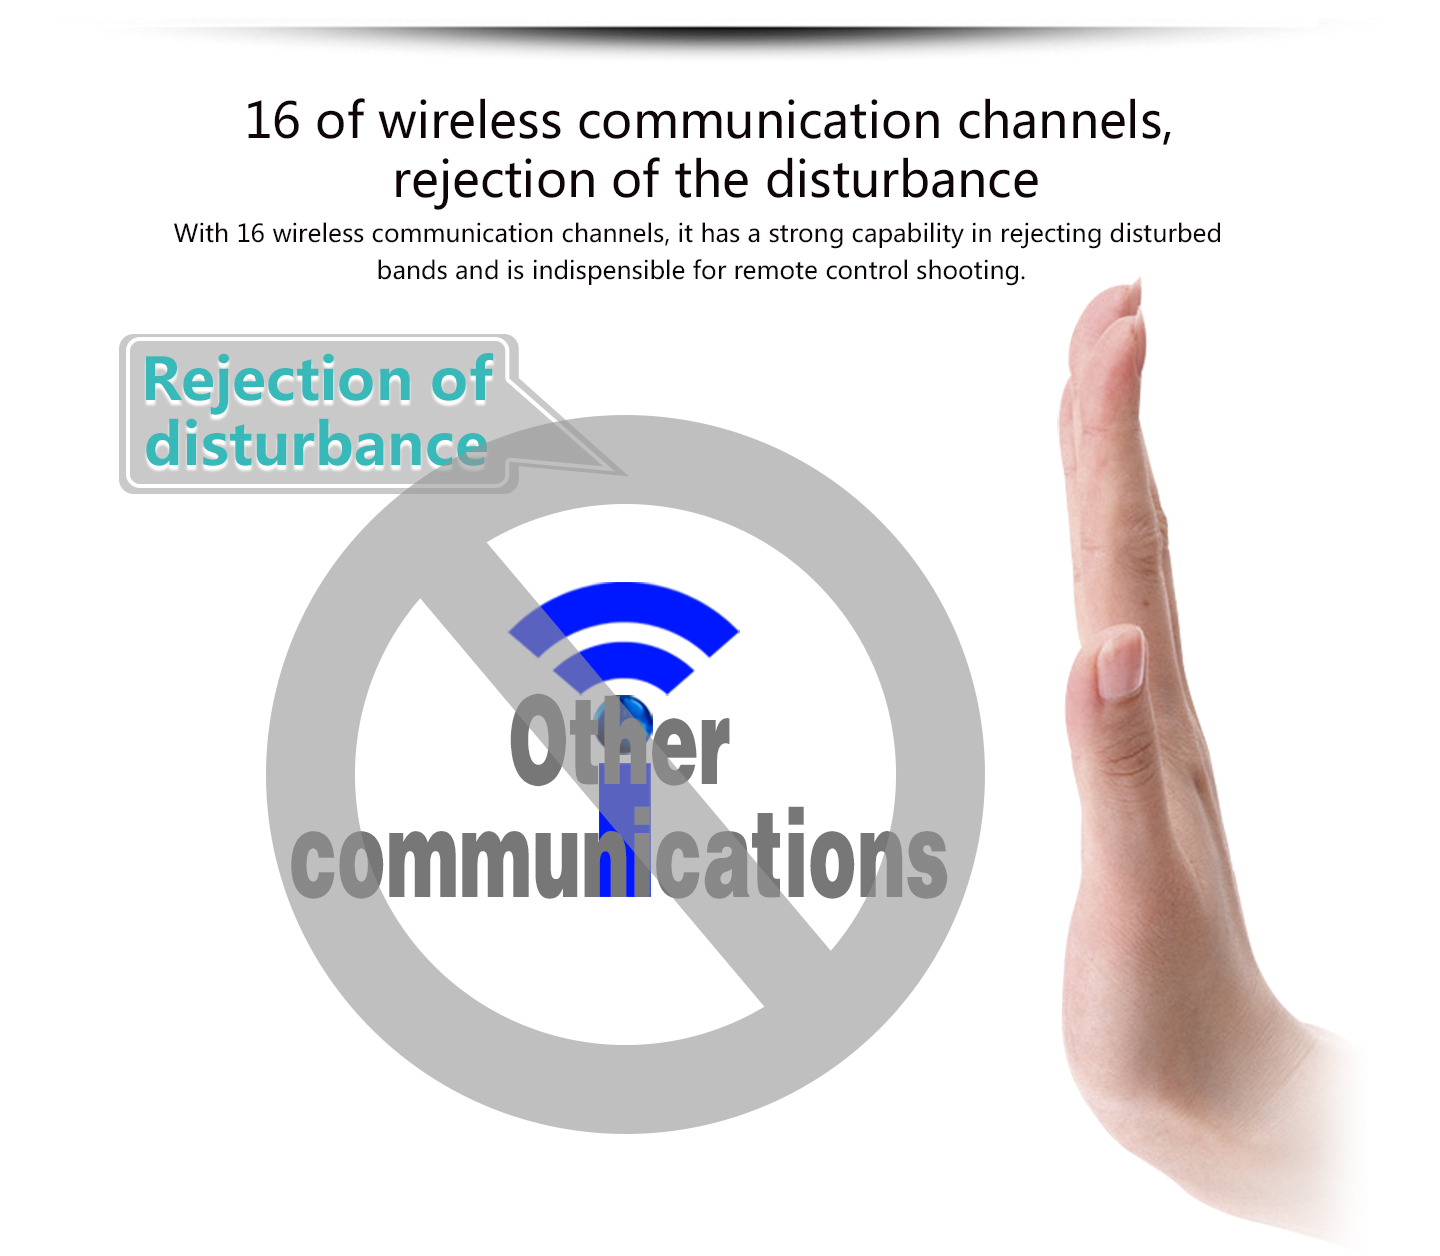 16 of wireless communication channels, rejection of the disturbance